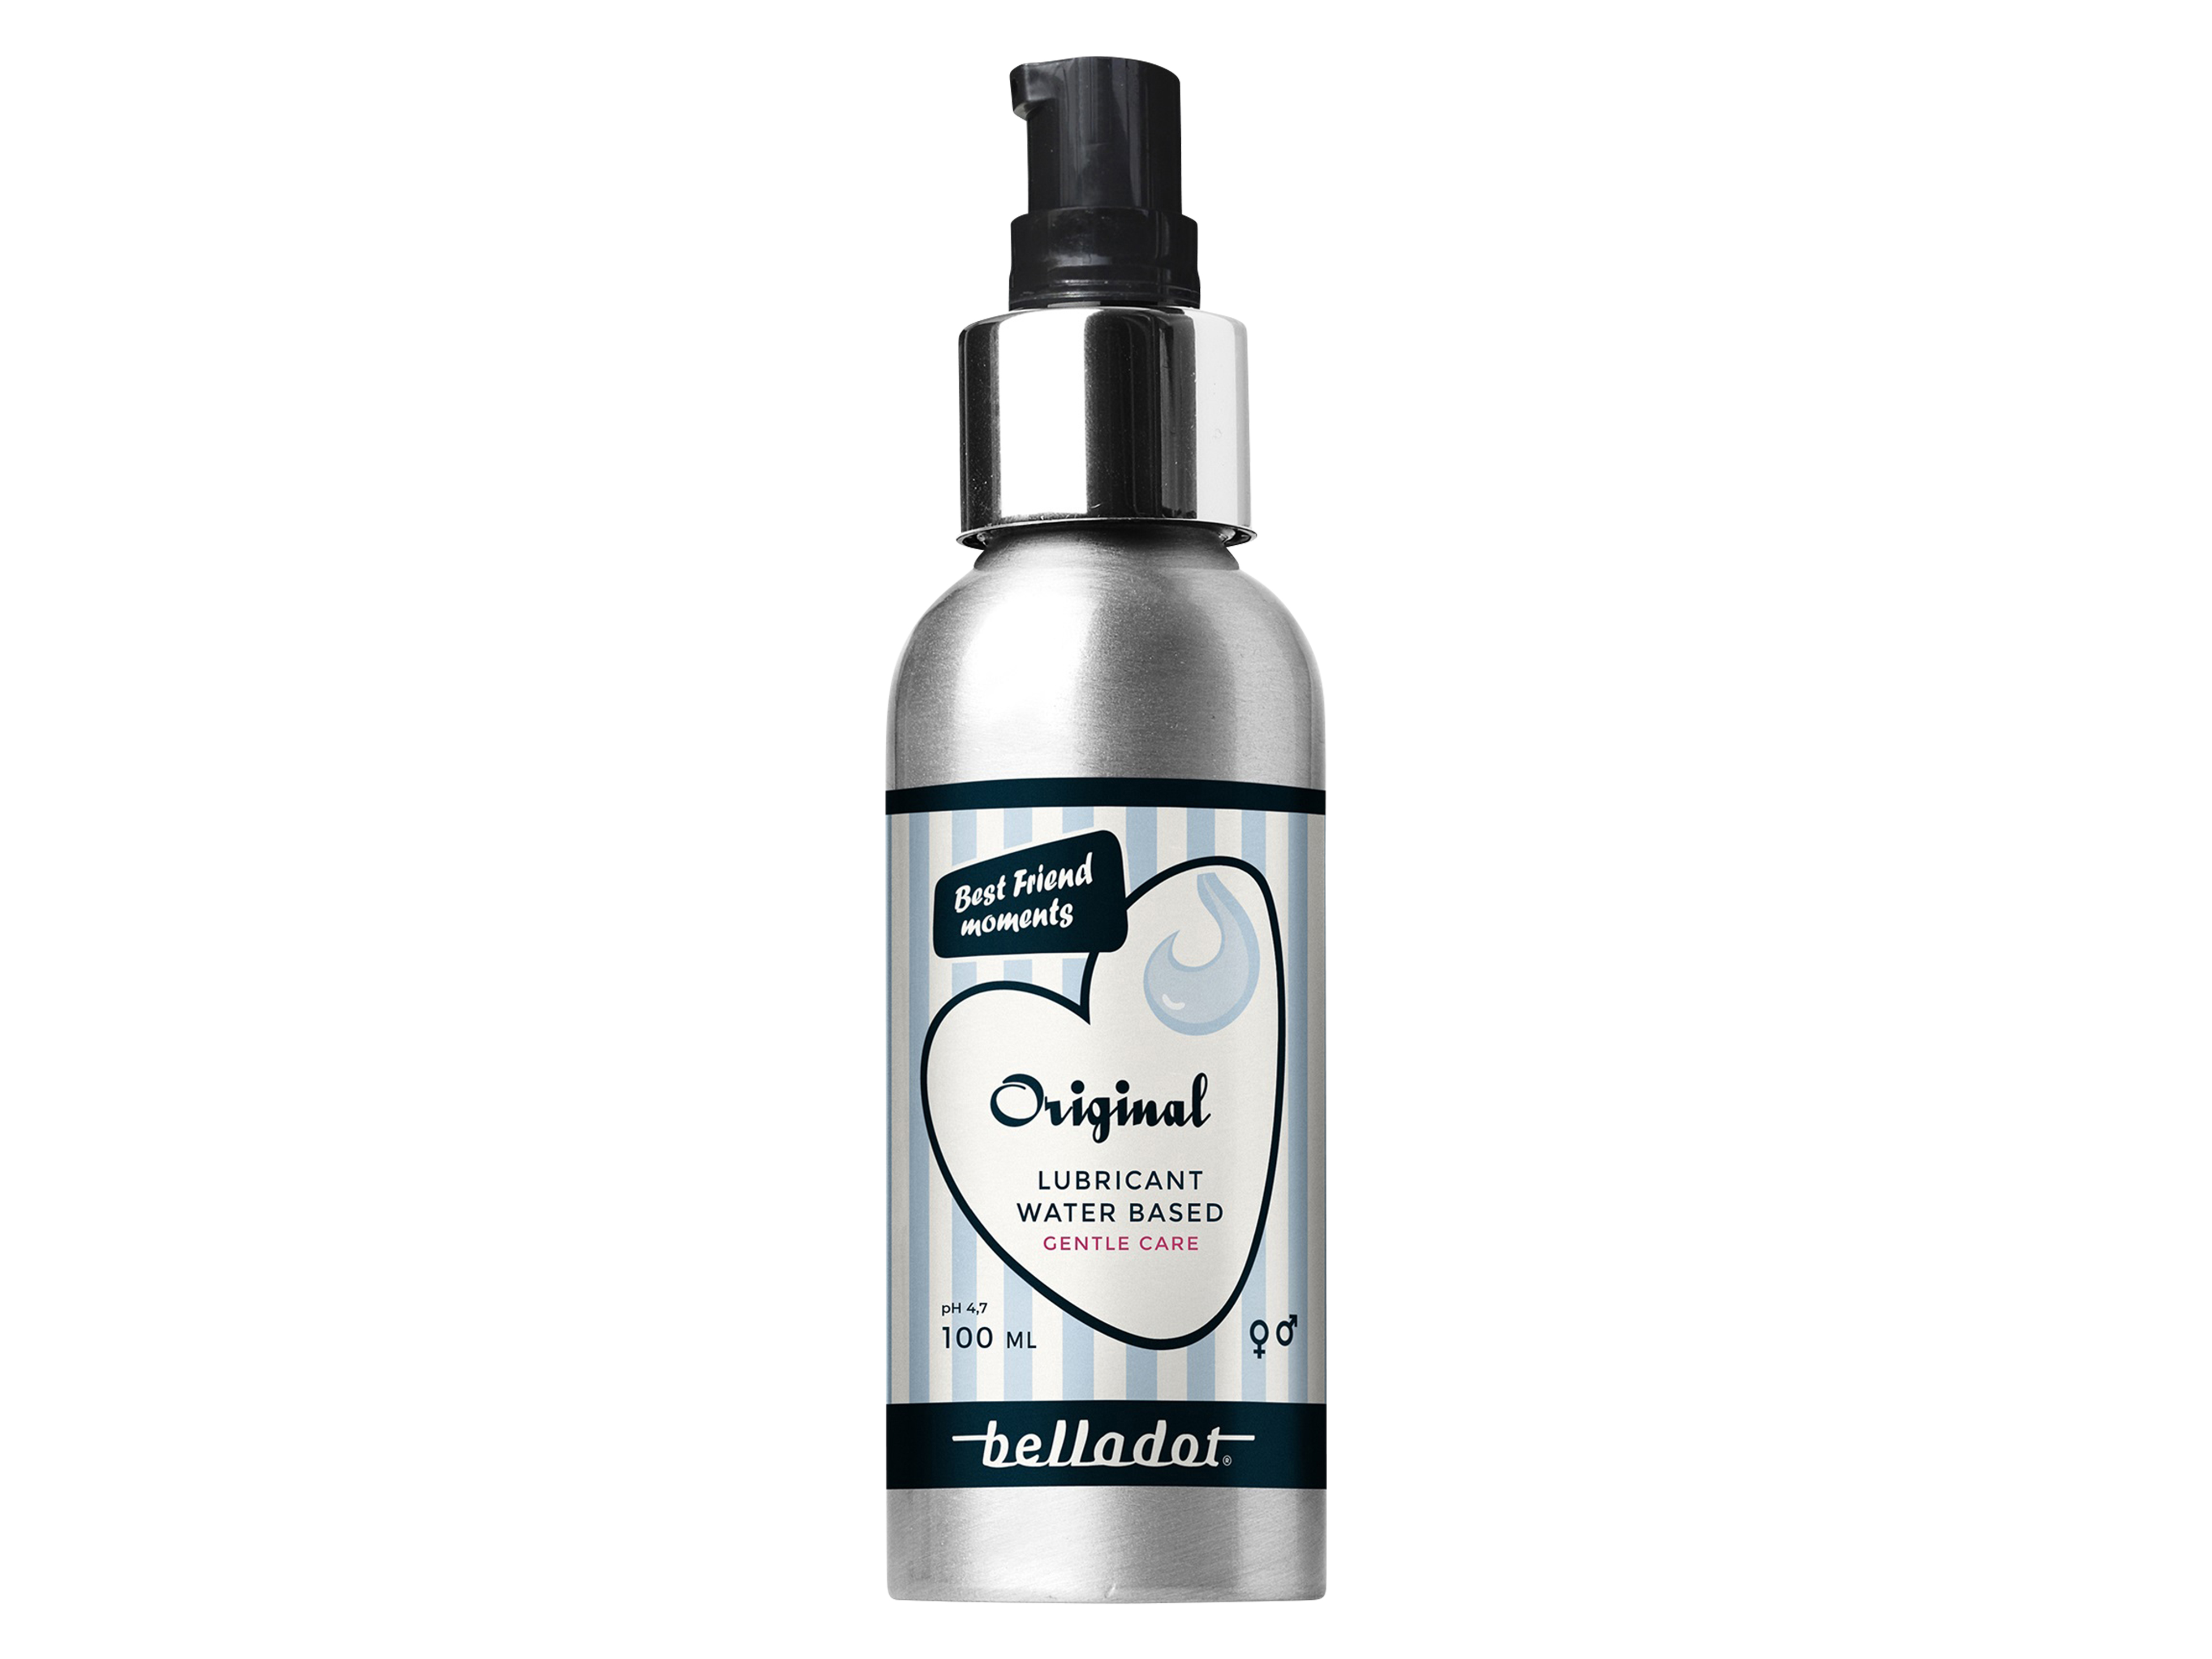 Belladot Original Lubricant Water Based, 100 ml